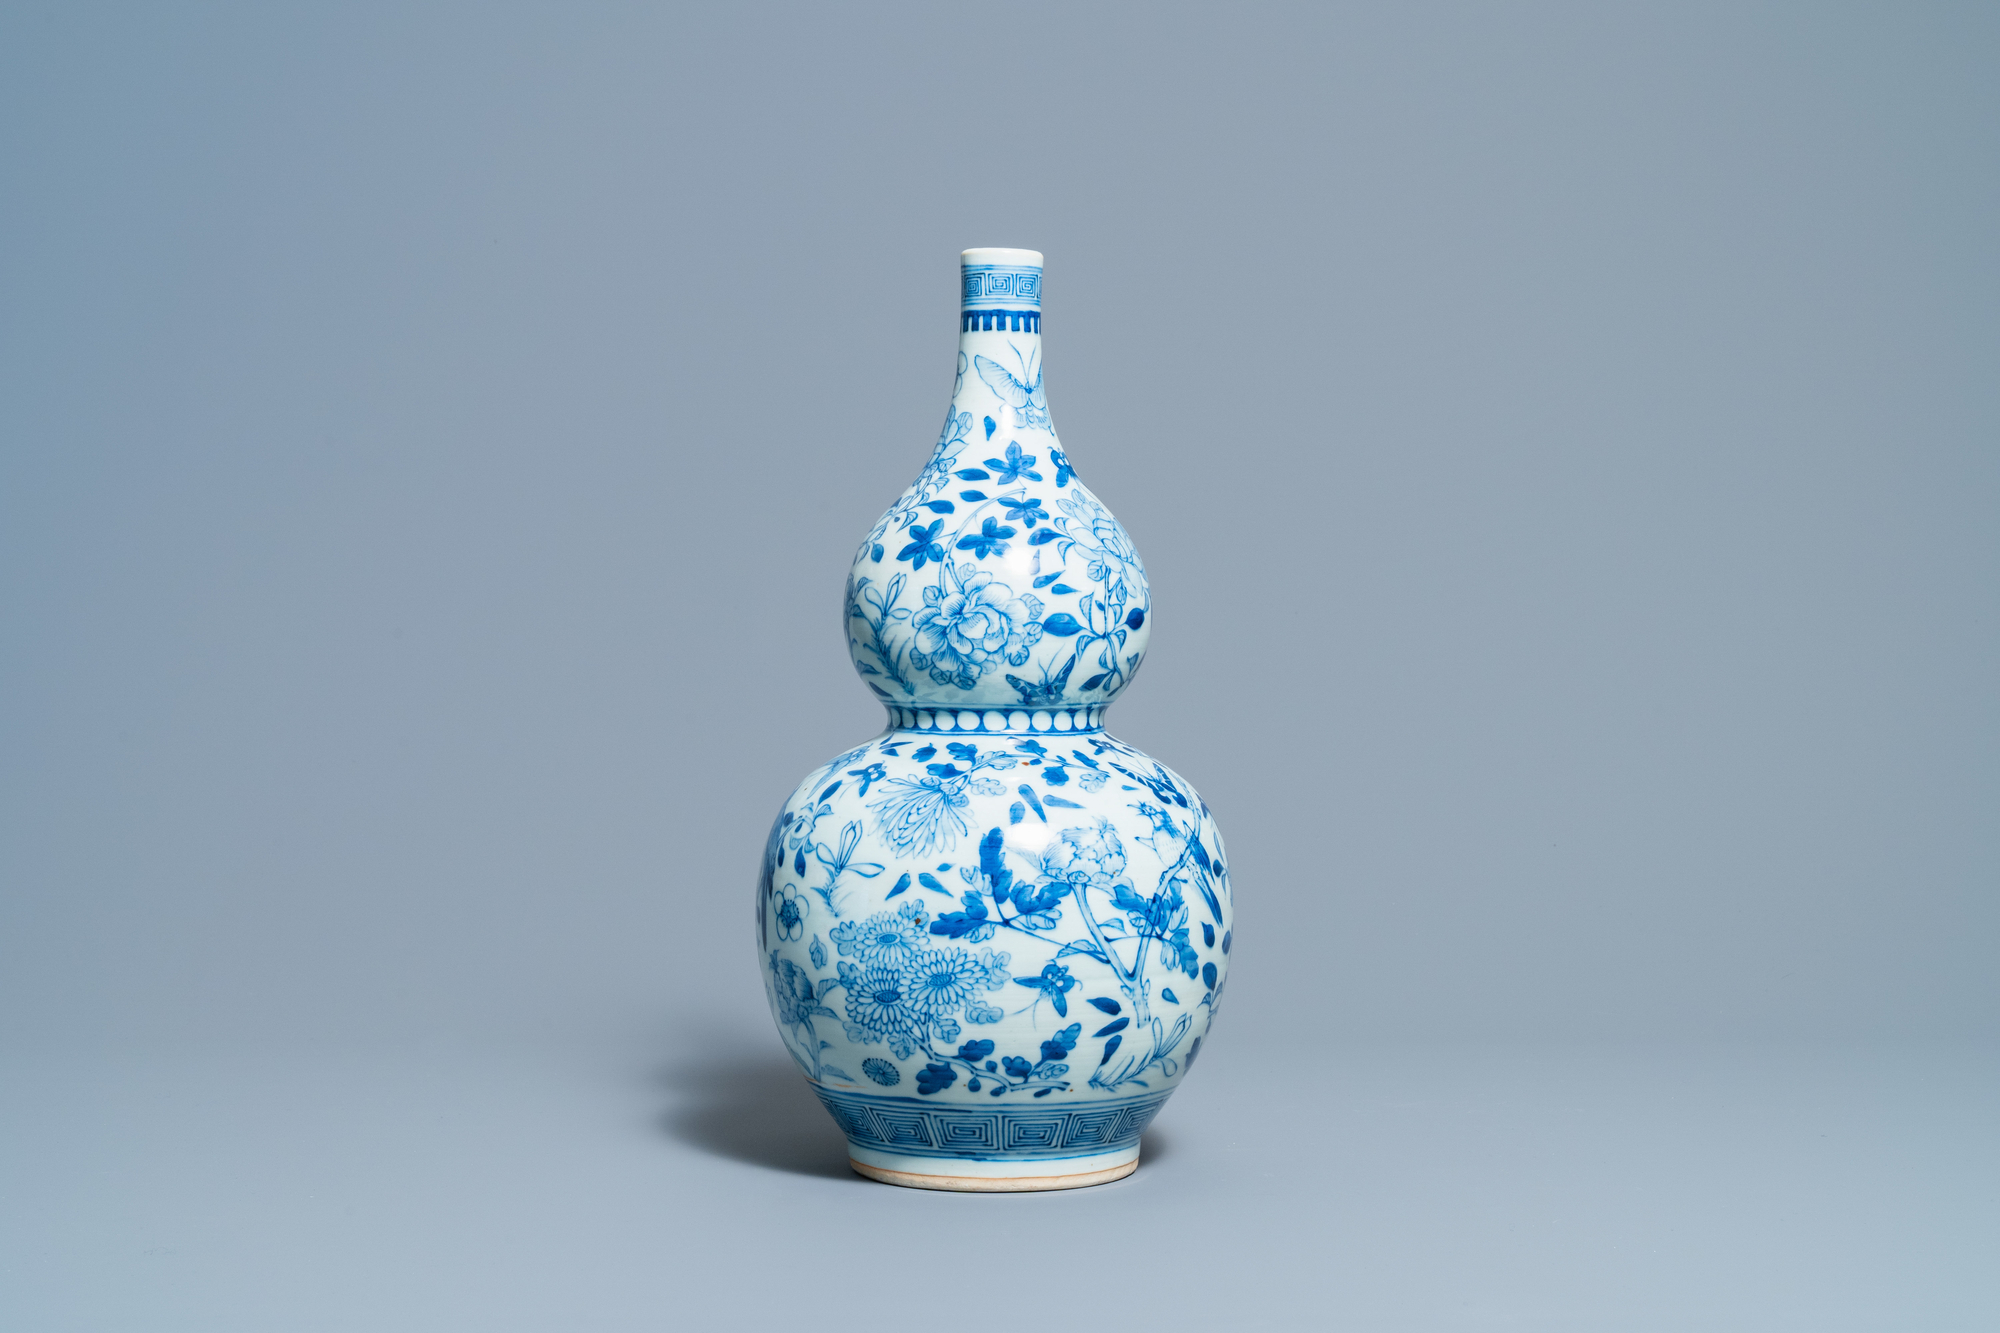 A Chinese blue and white double gourd vase, 19th C. - Image 3 of 6